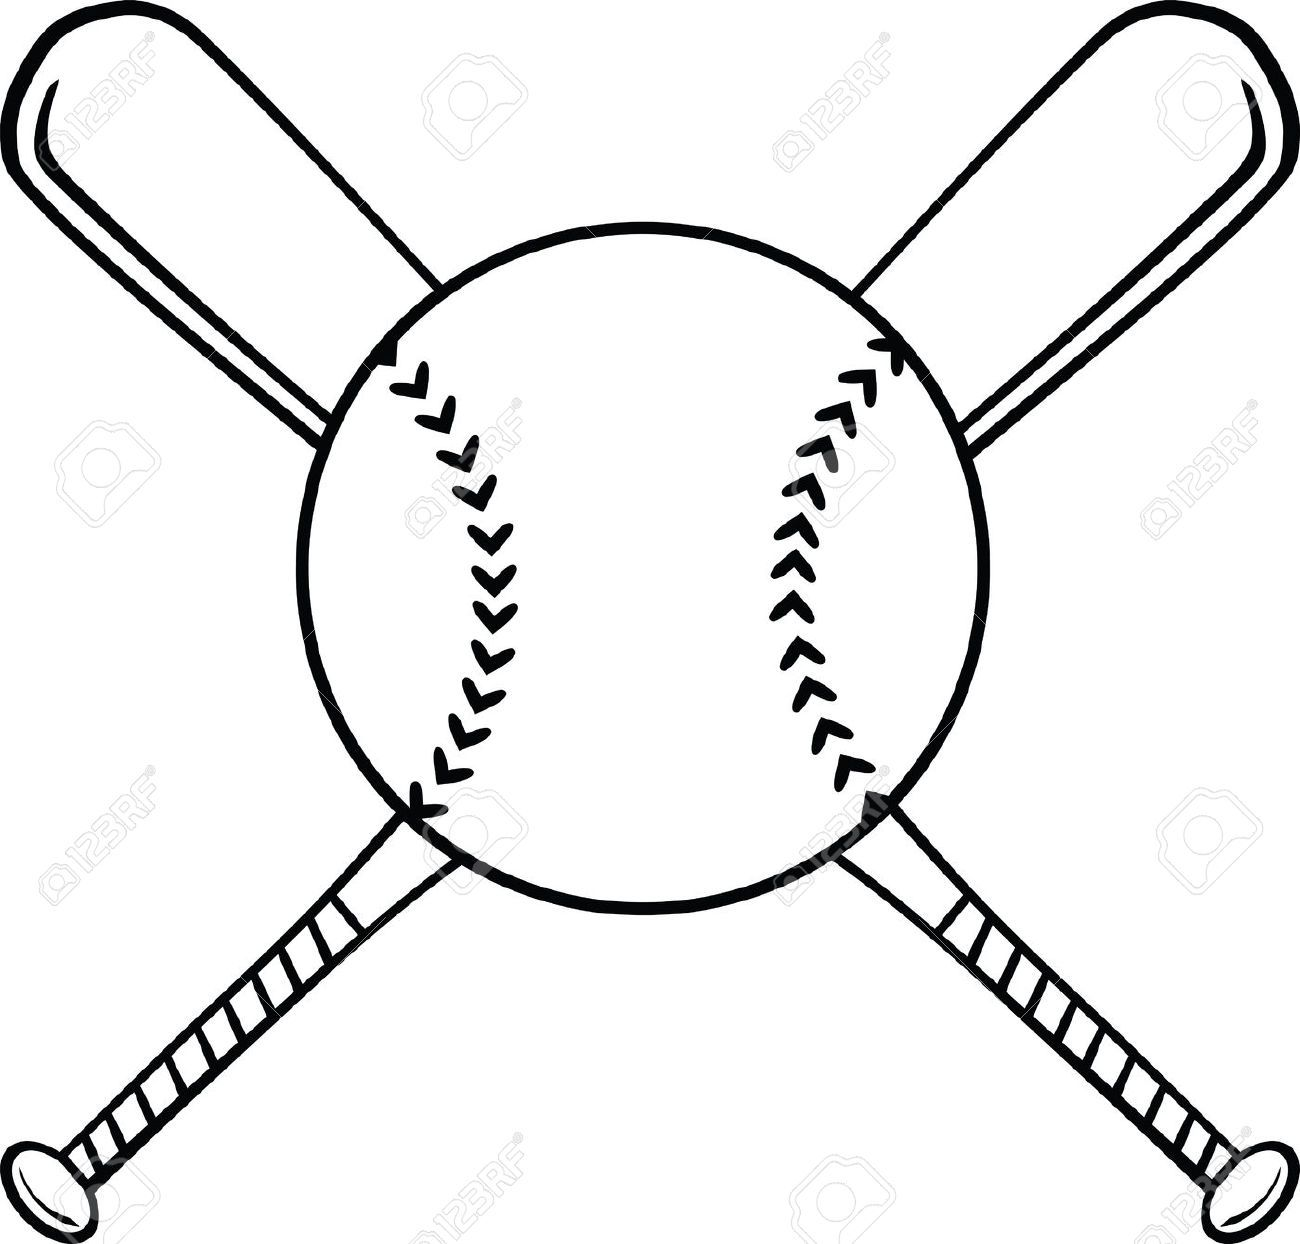 Baseball black and white. Softball ball bat clipart